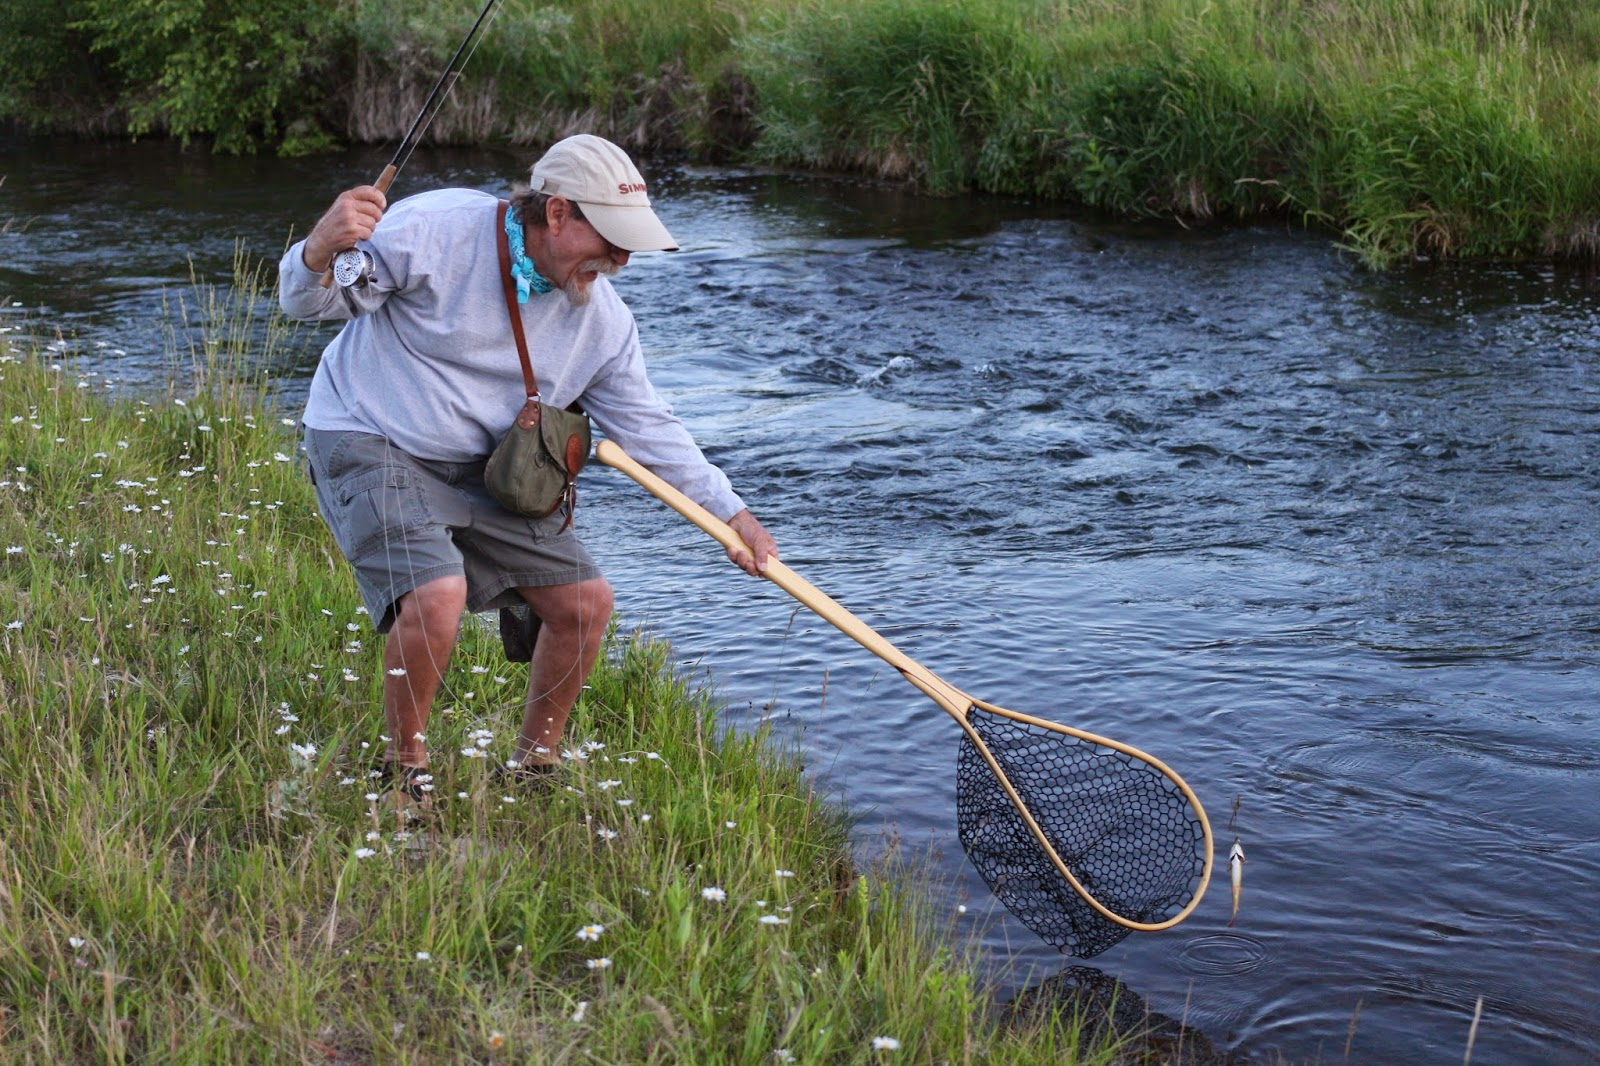 Roaring+fork+river+fly+fishing+with+Jay+Scott+Outdoors+24.JPG